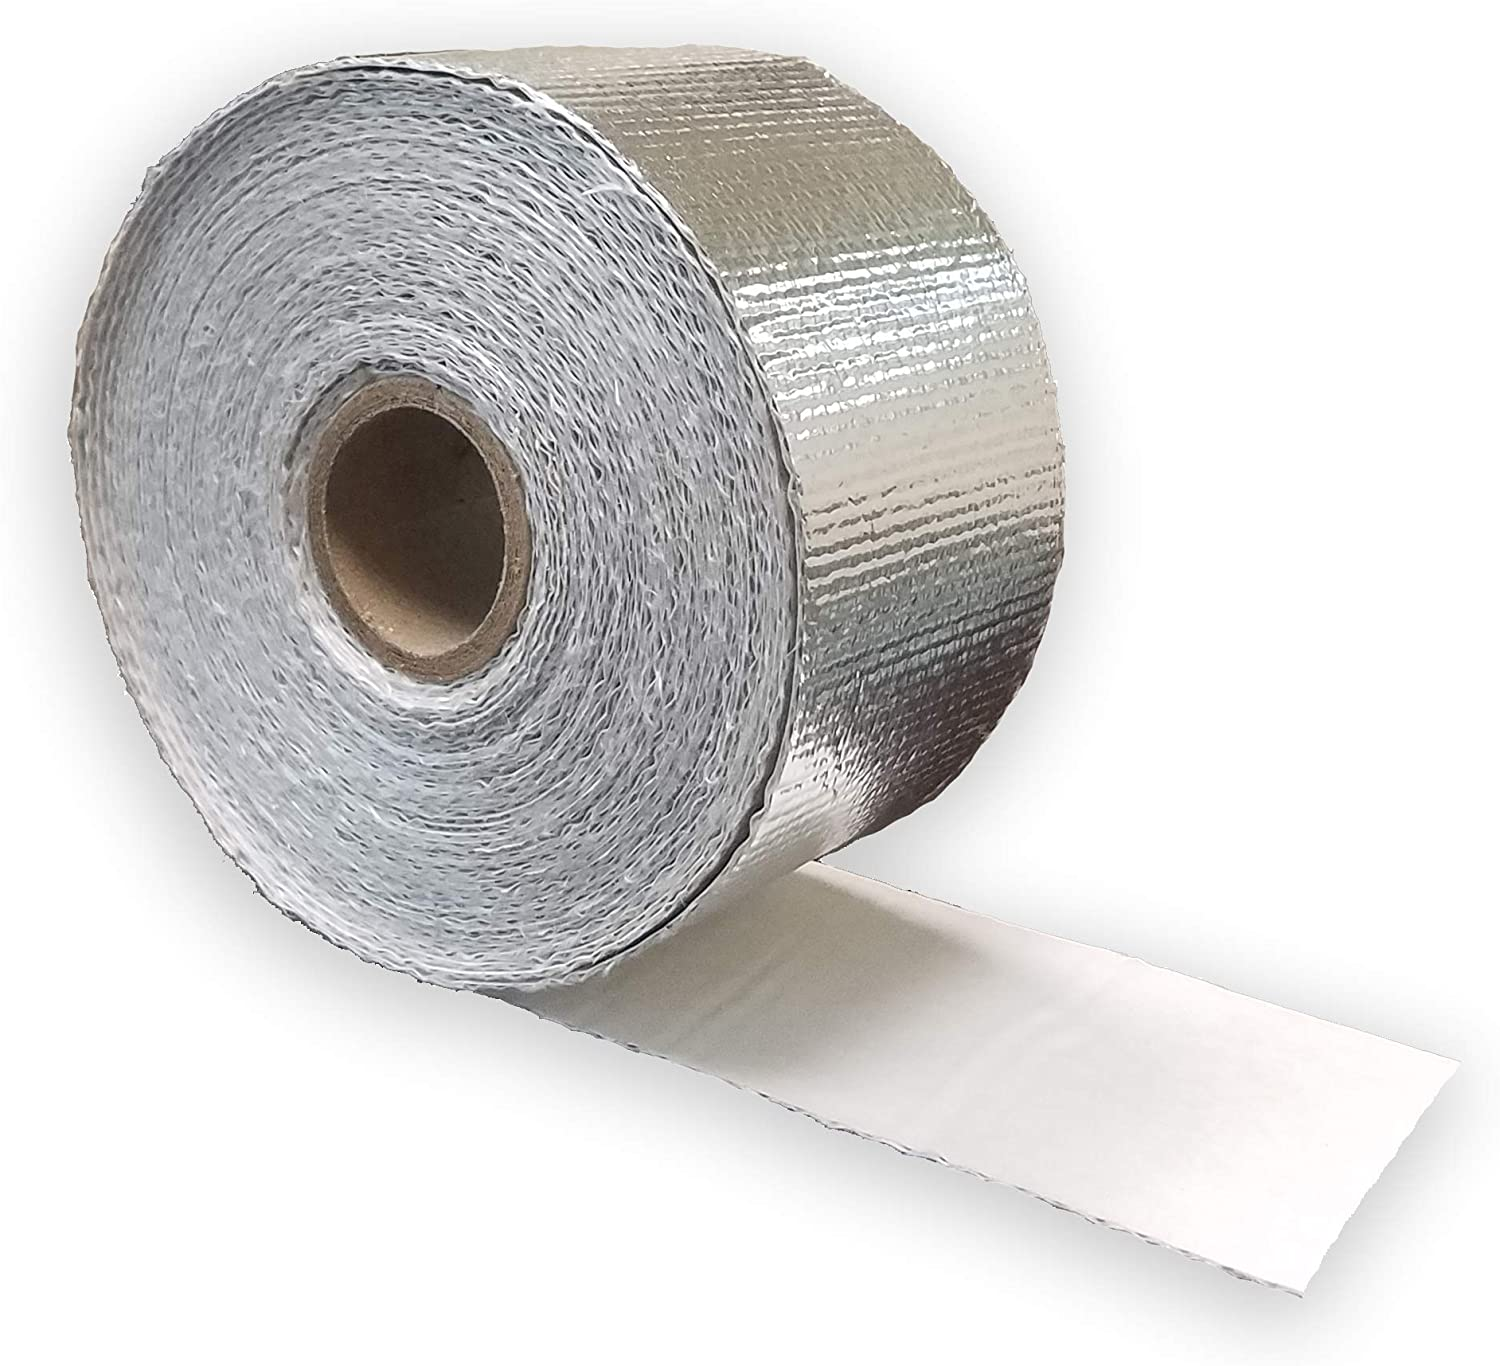 "Newtex Z-Flex Self-Adhesive Heat Reflective Tape (2.0"" x 25')"